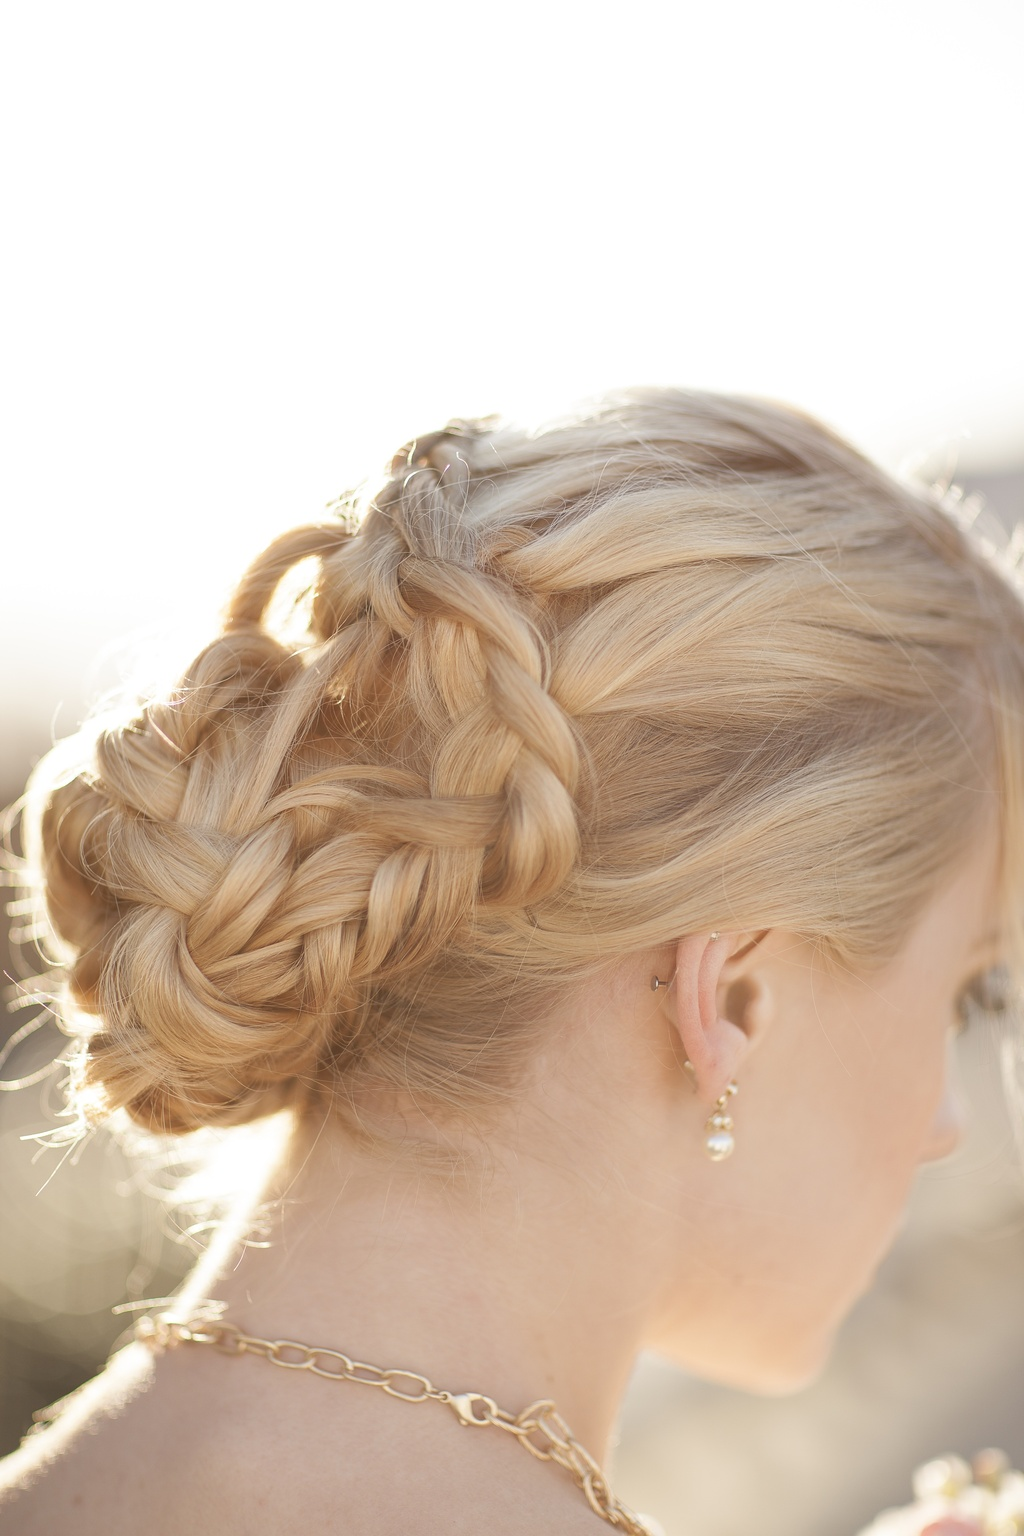 Romantic-braided-wedding-updo-bridal-hairstyles.full